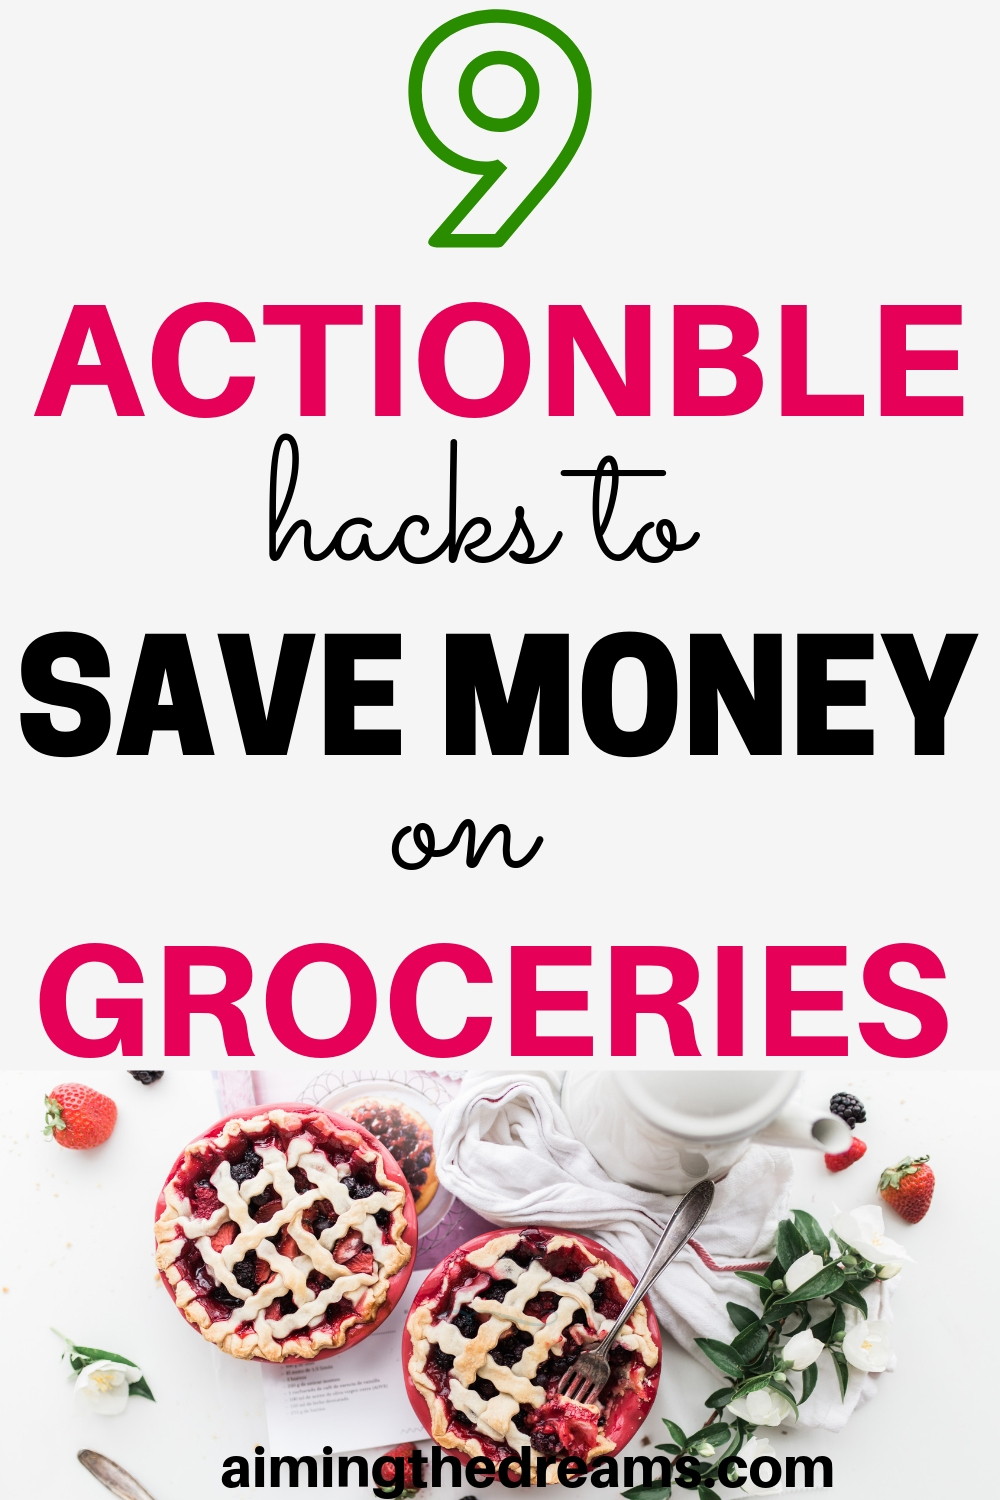 9 simple and actionable hacks to save money on groceries each month without sacrificing your needs.